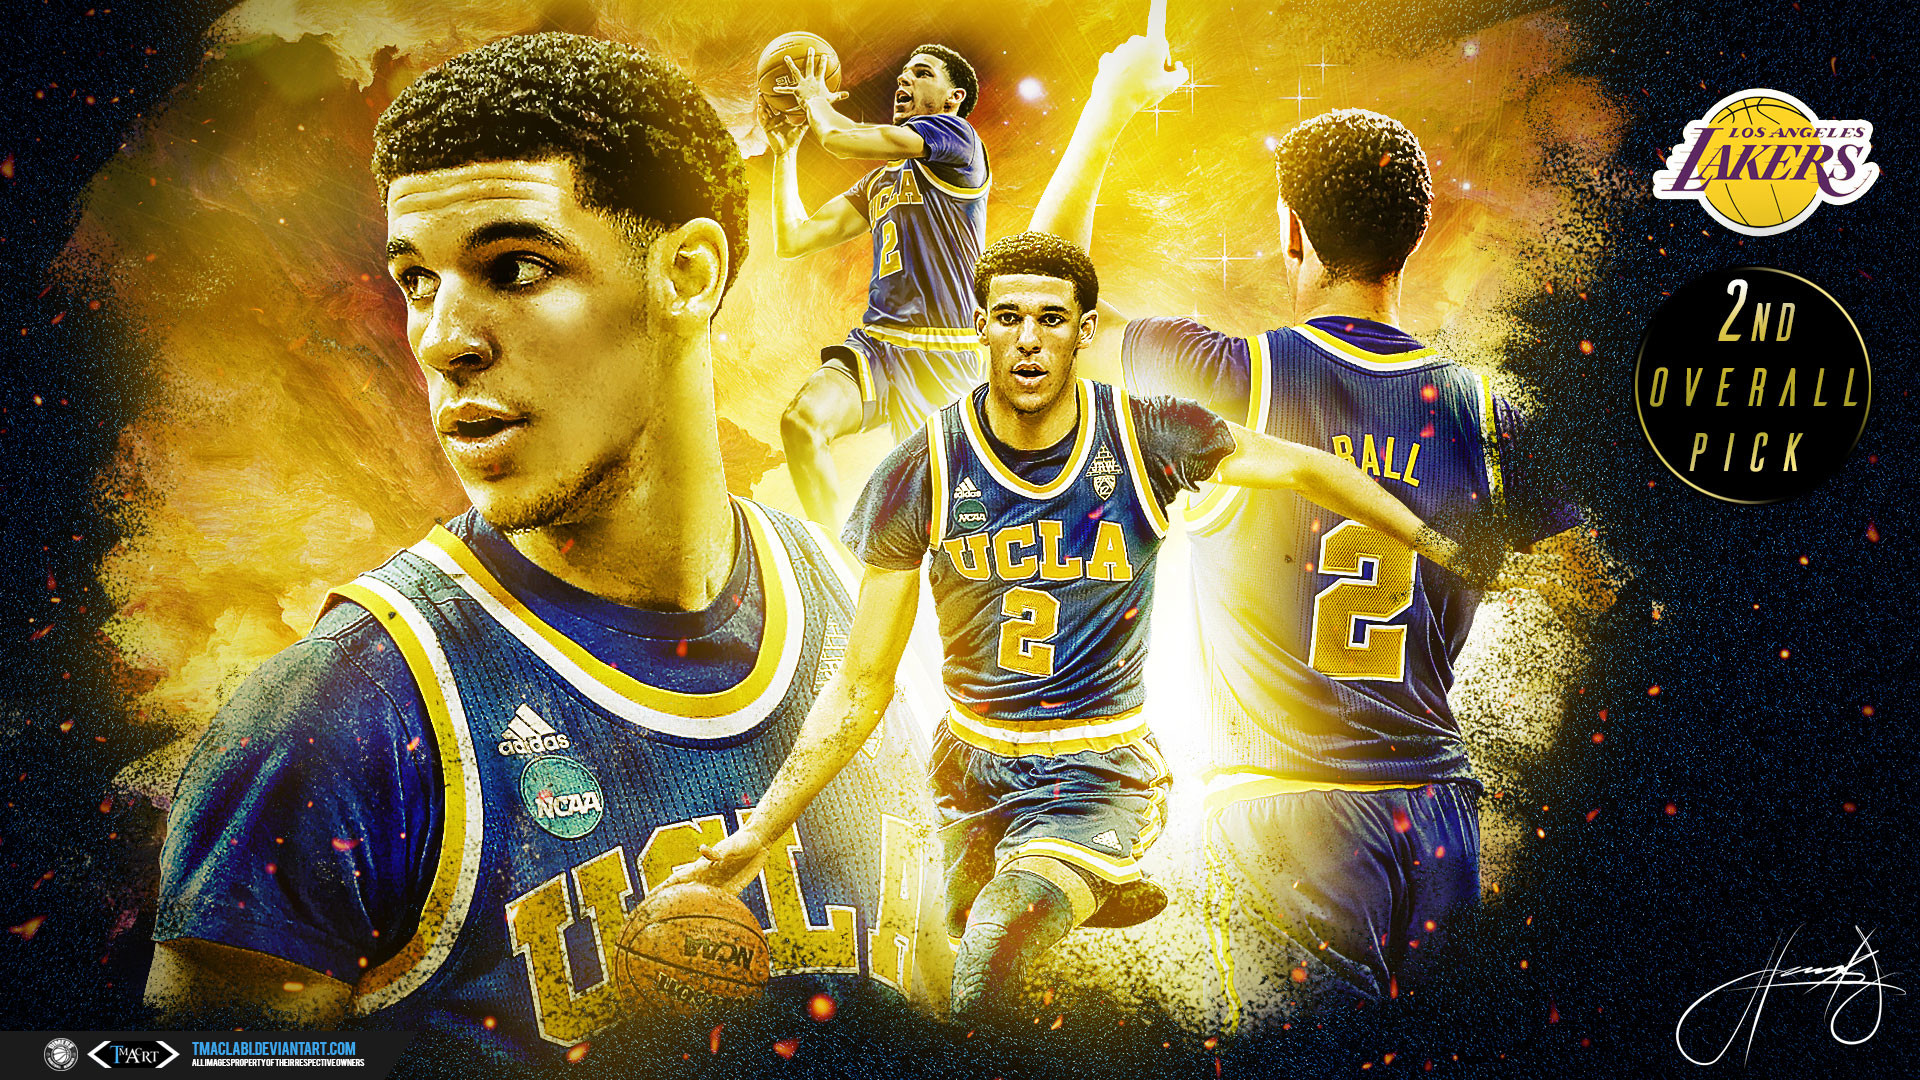 Res: 1920x1080, UCLA Bruins Wallpapers. Lonzo Ball 2nd Pick 2017  Wallpaper